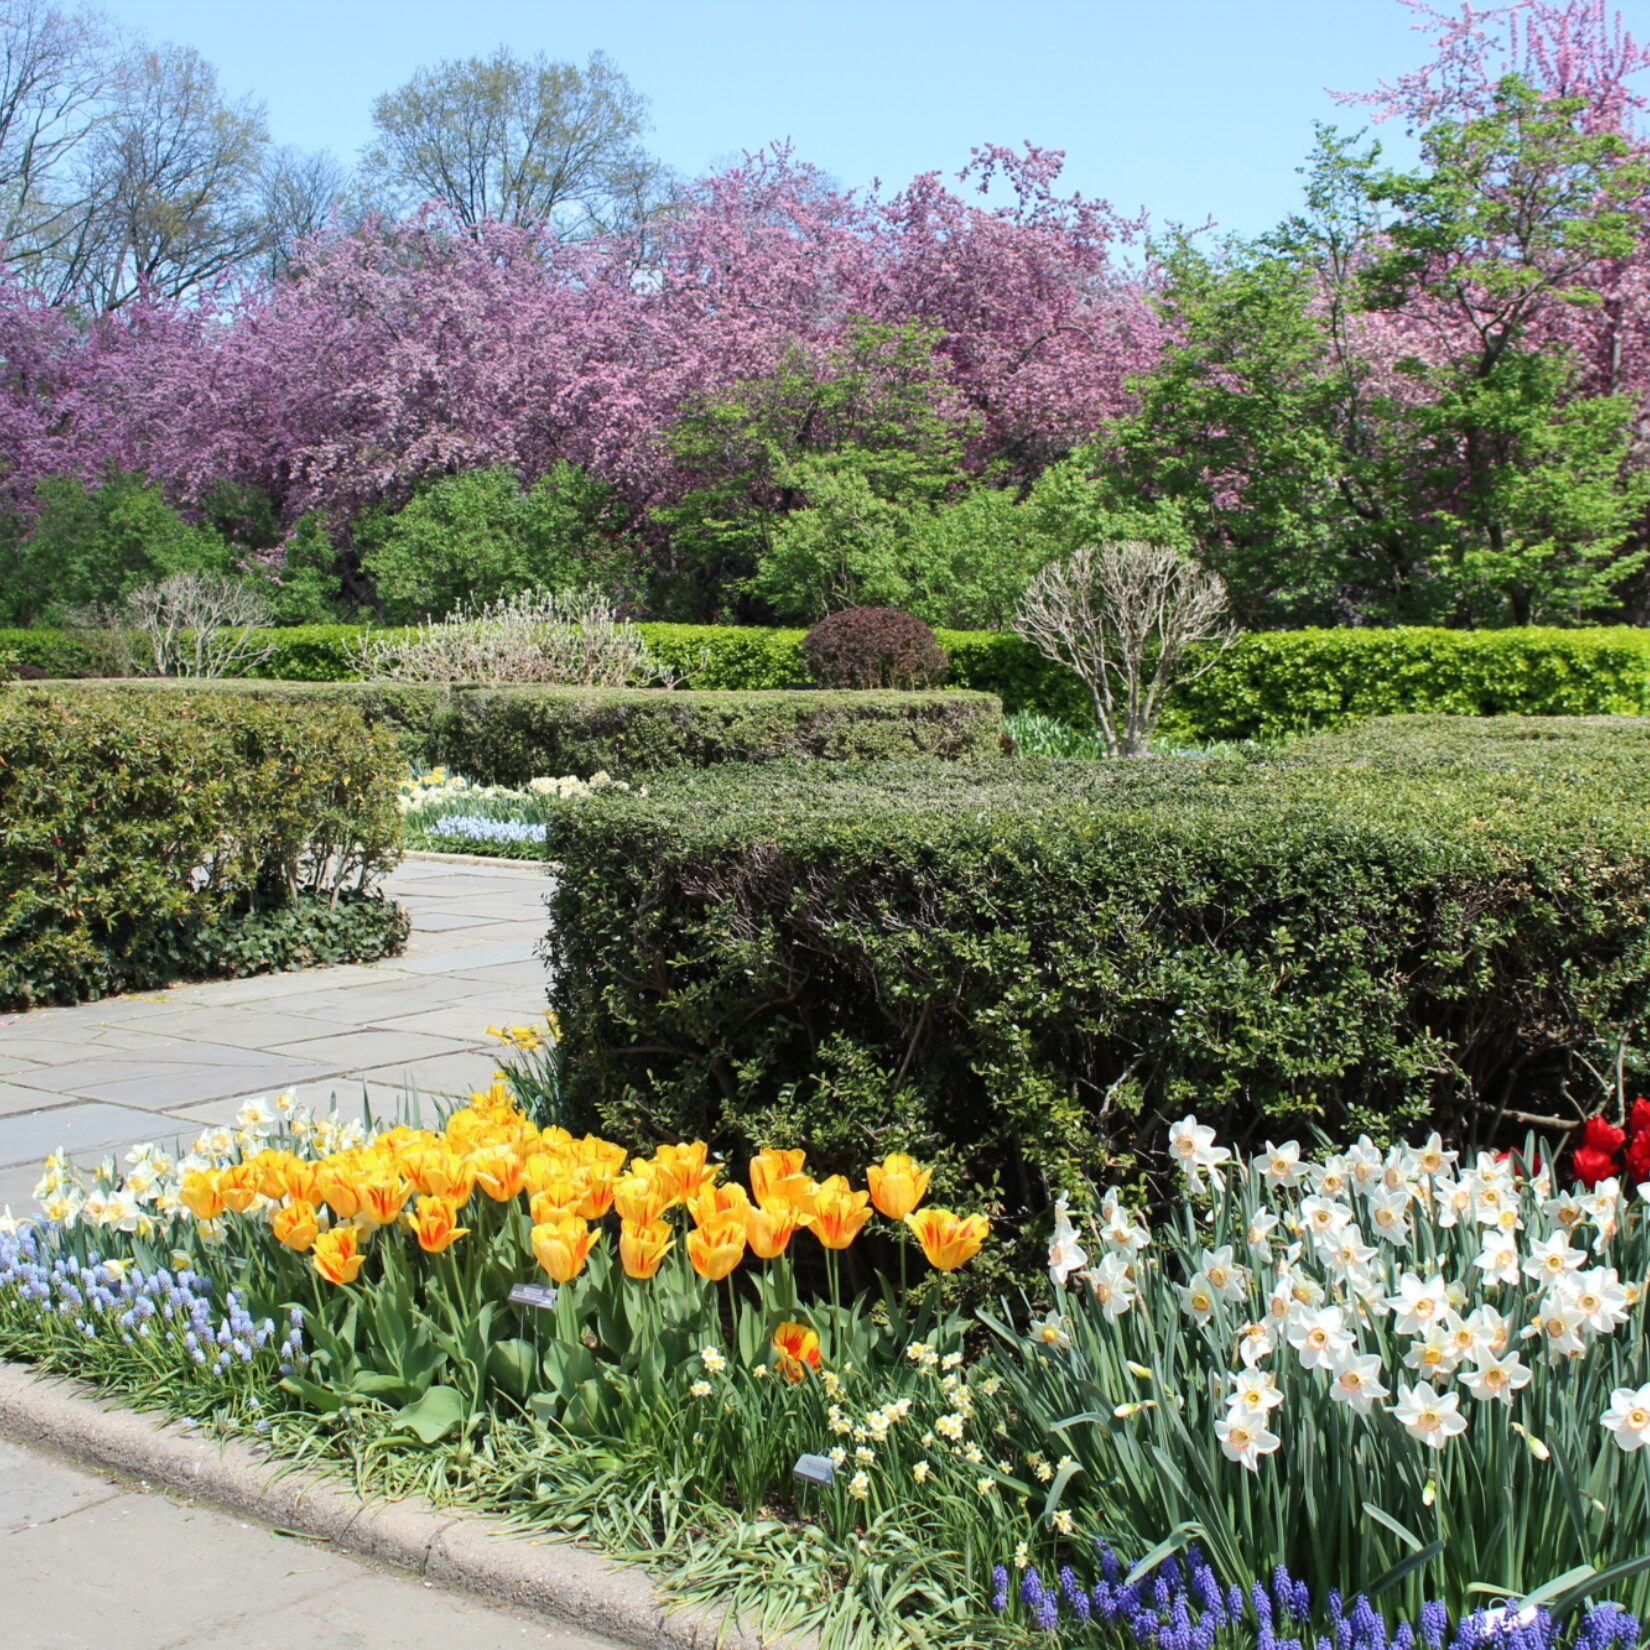 Manicured hedges are circled by tulips and daffodils and surrounded by a generous walkway.